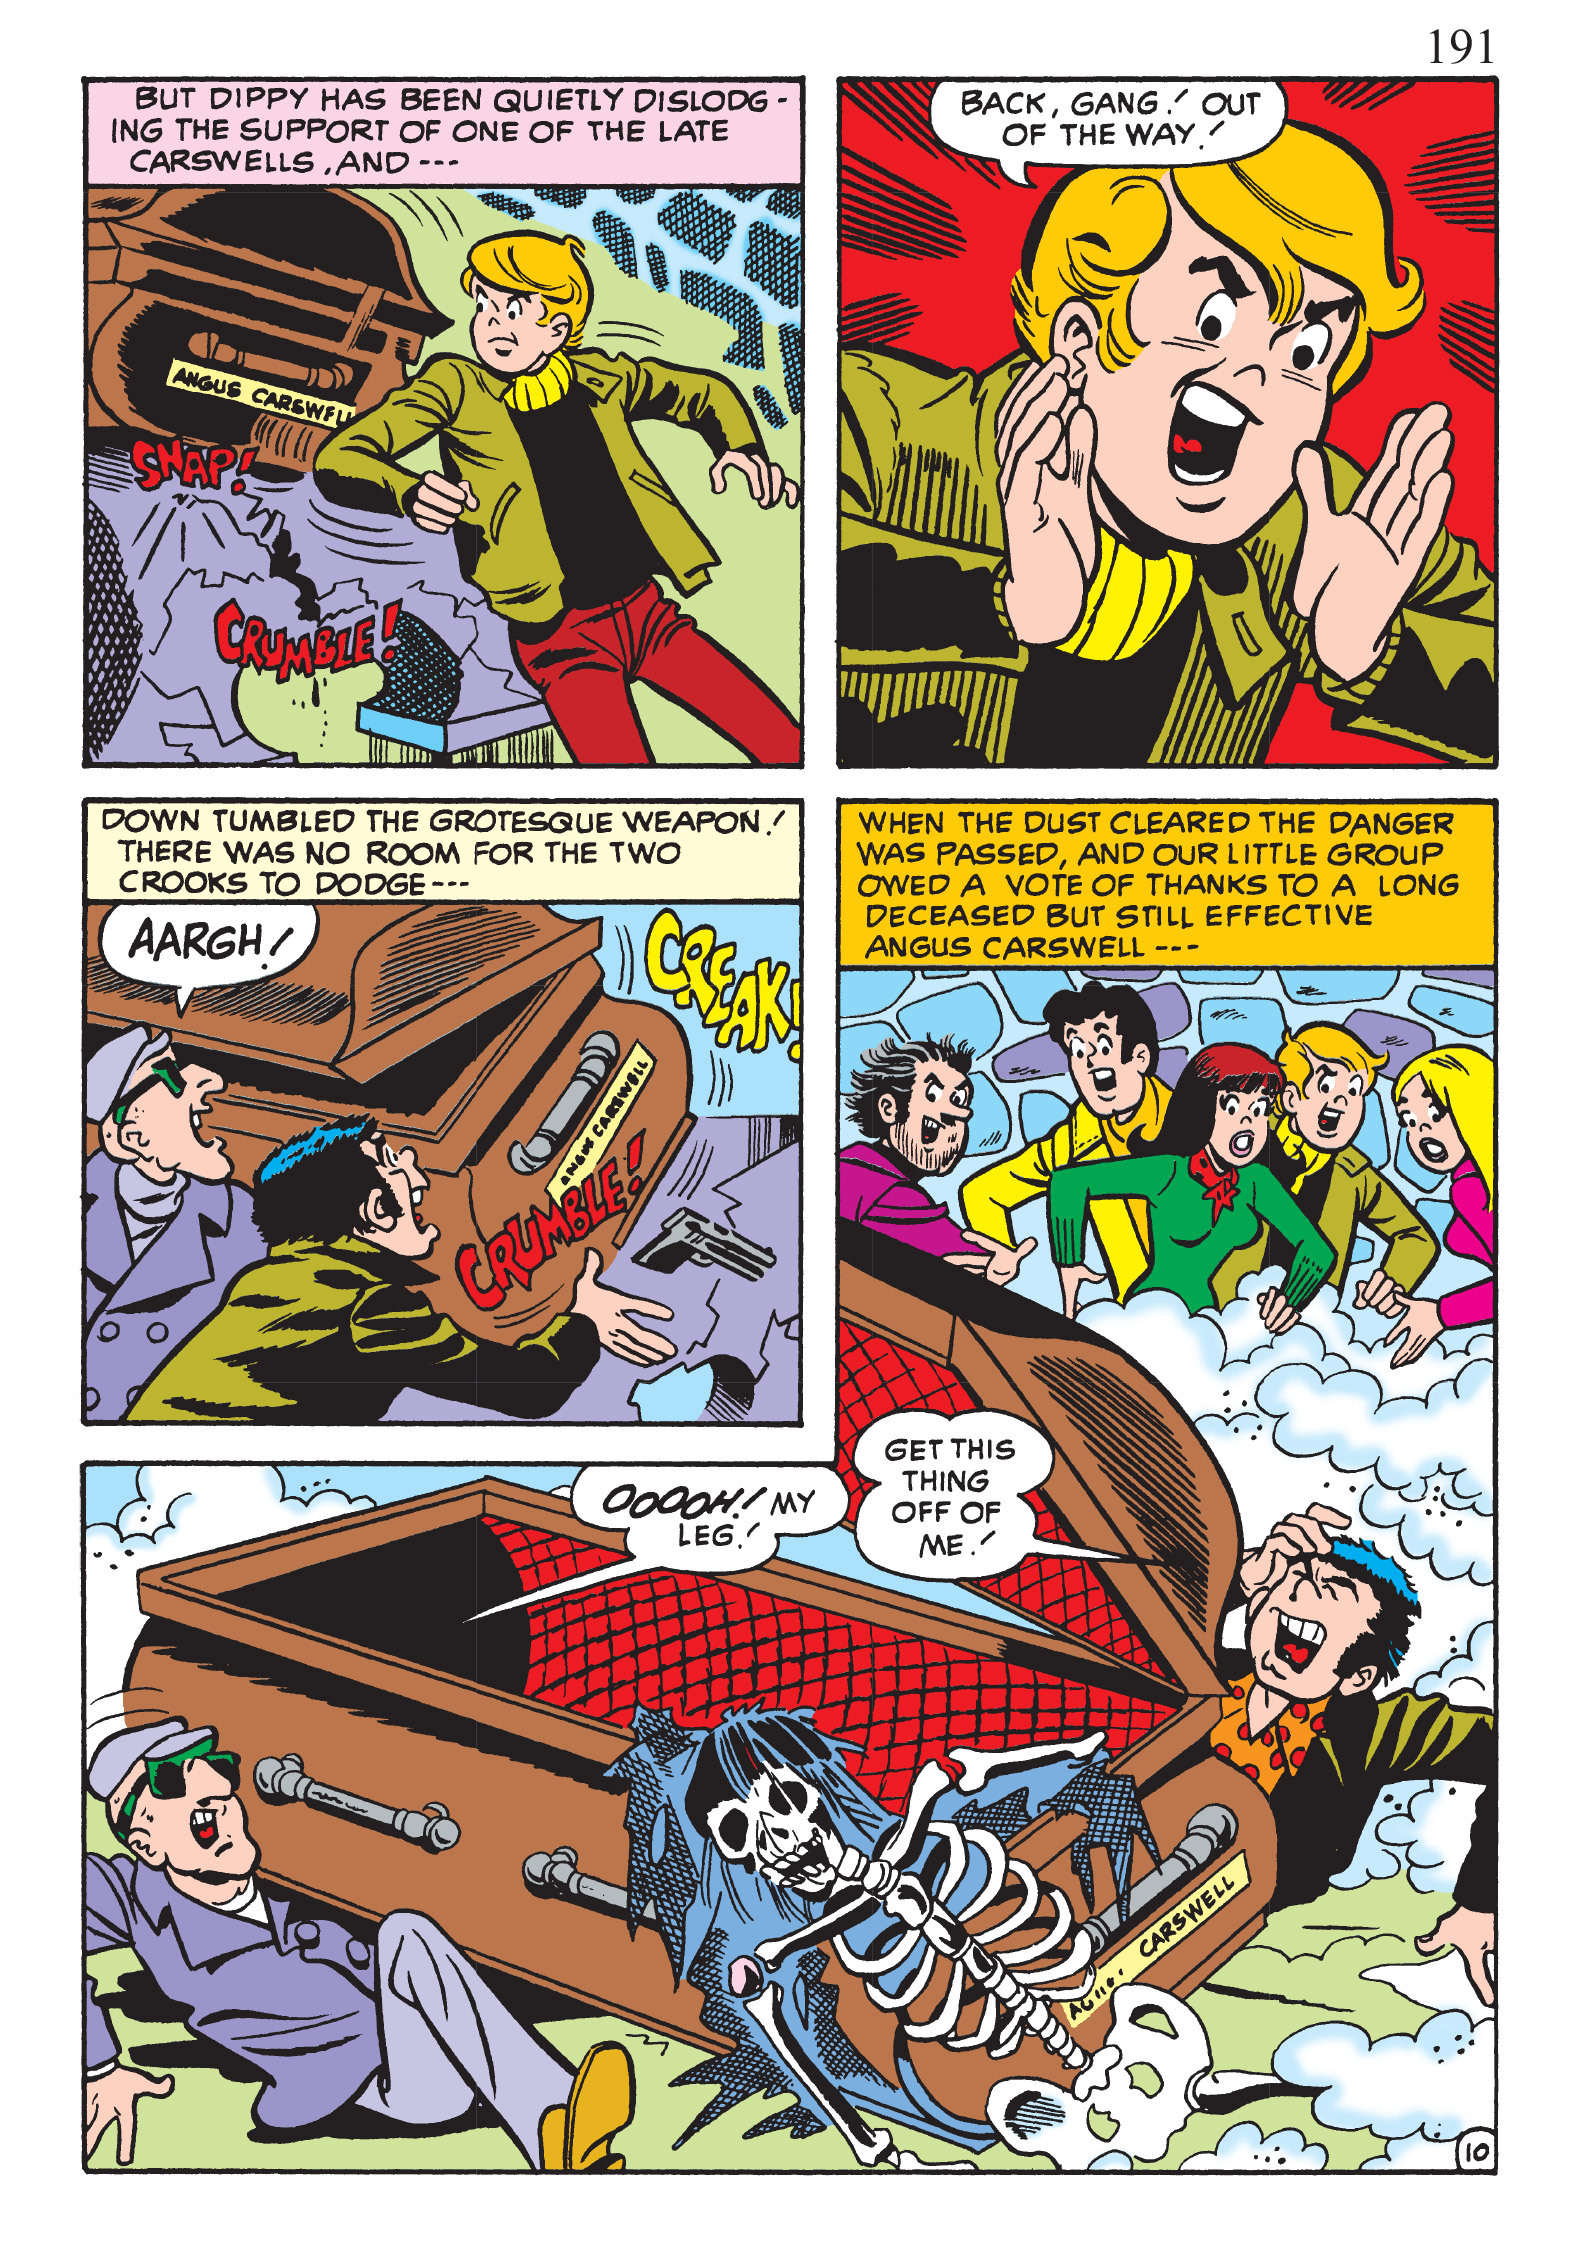 Read online The Best of Archie Comics comic -  Issue # TPB 2 (Part 1) - 193